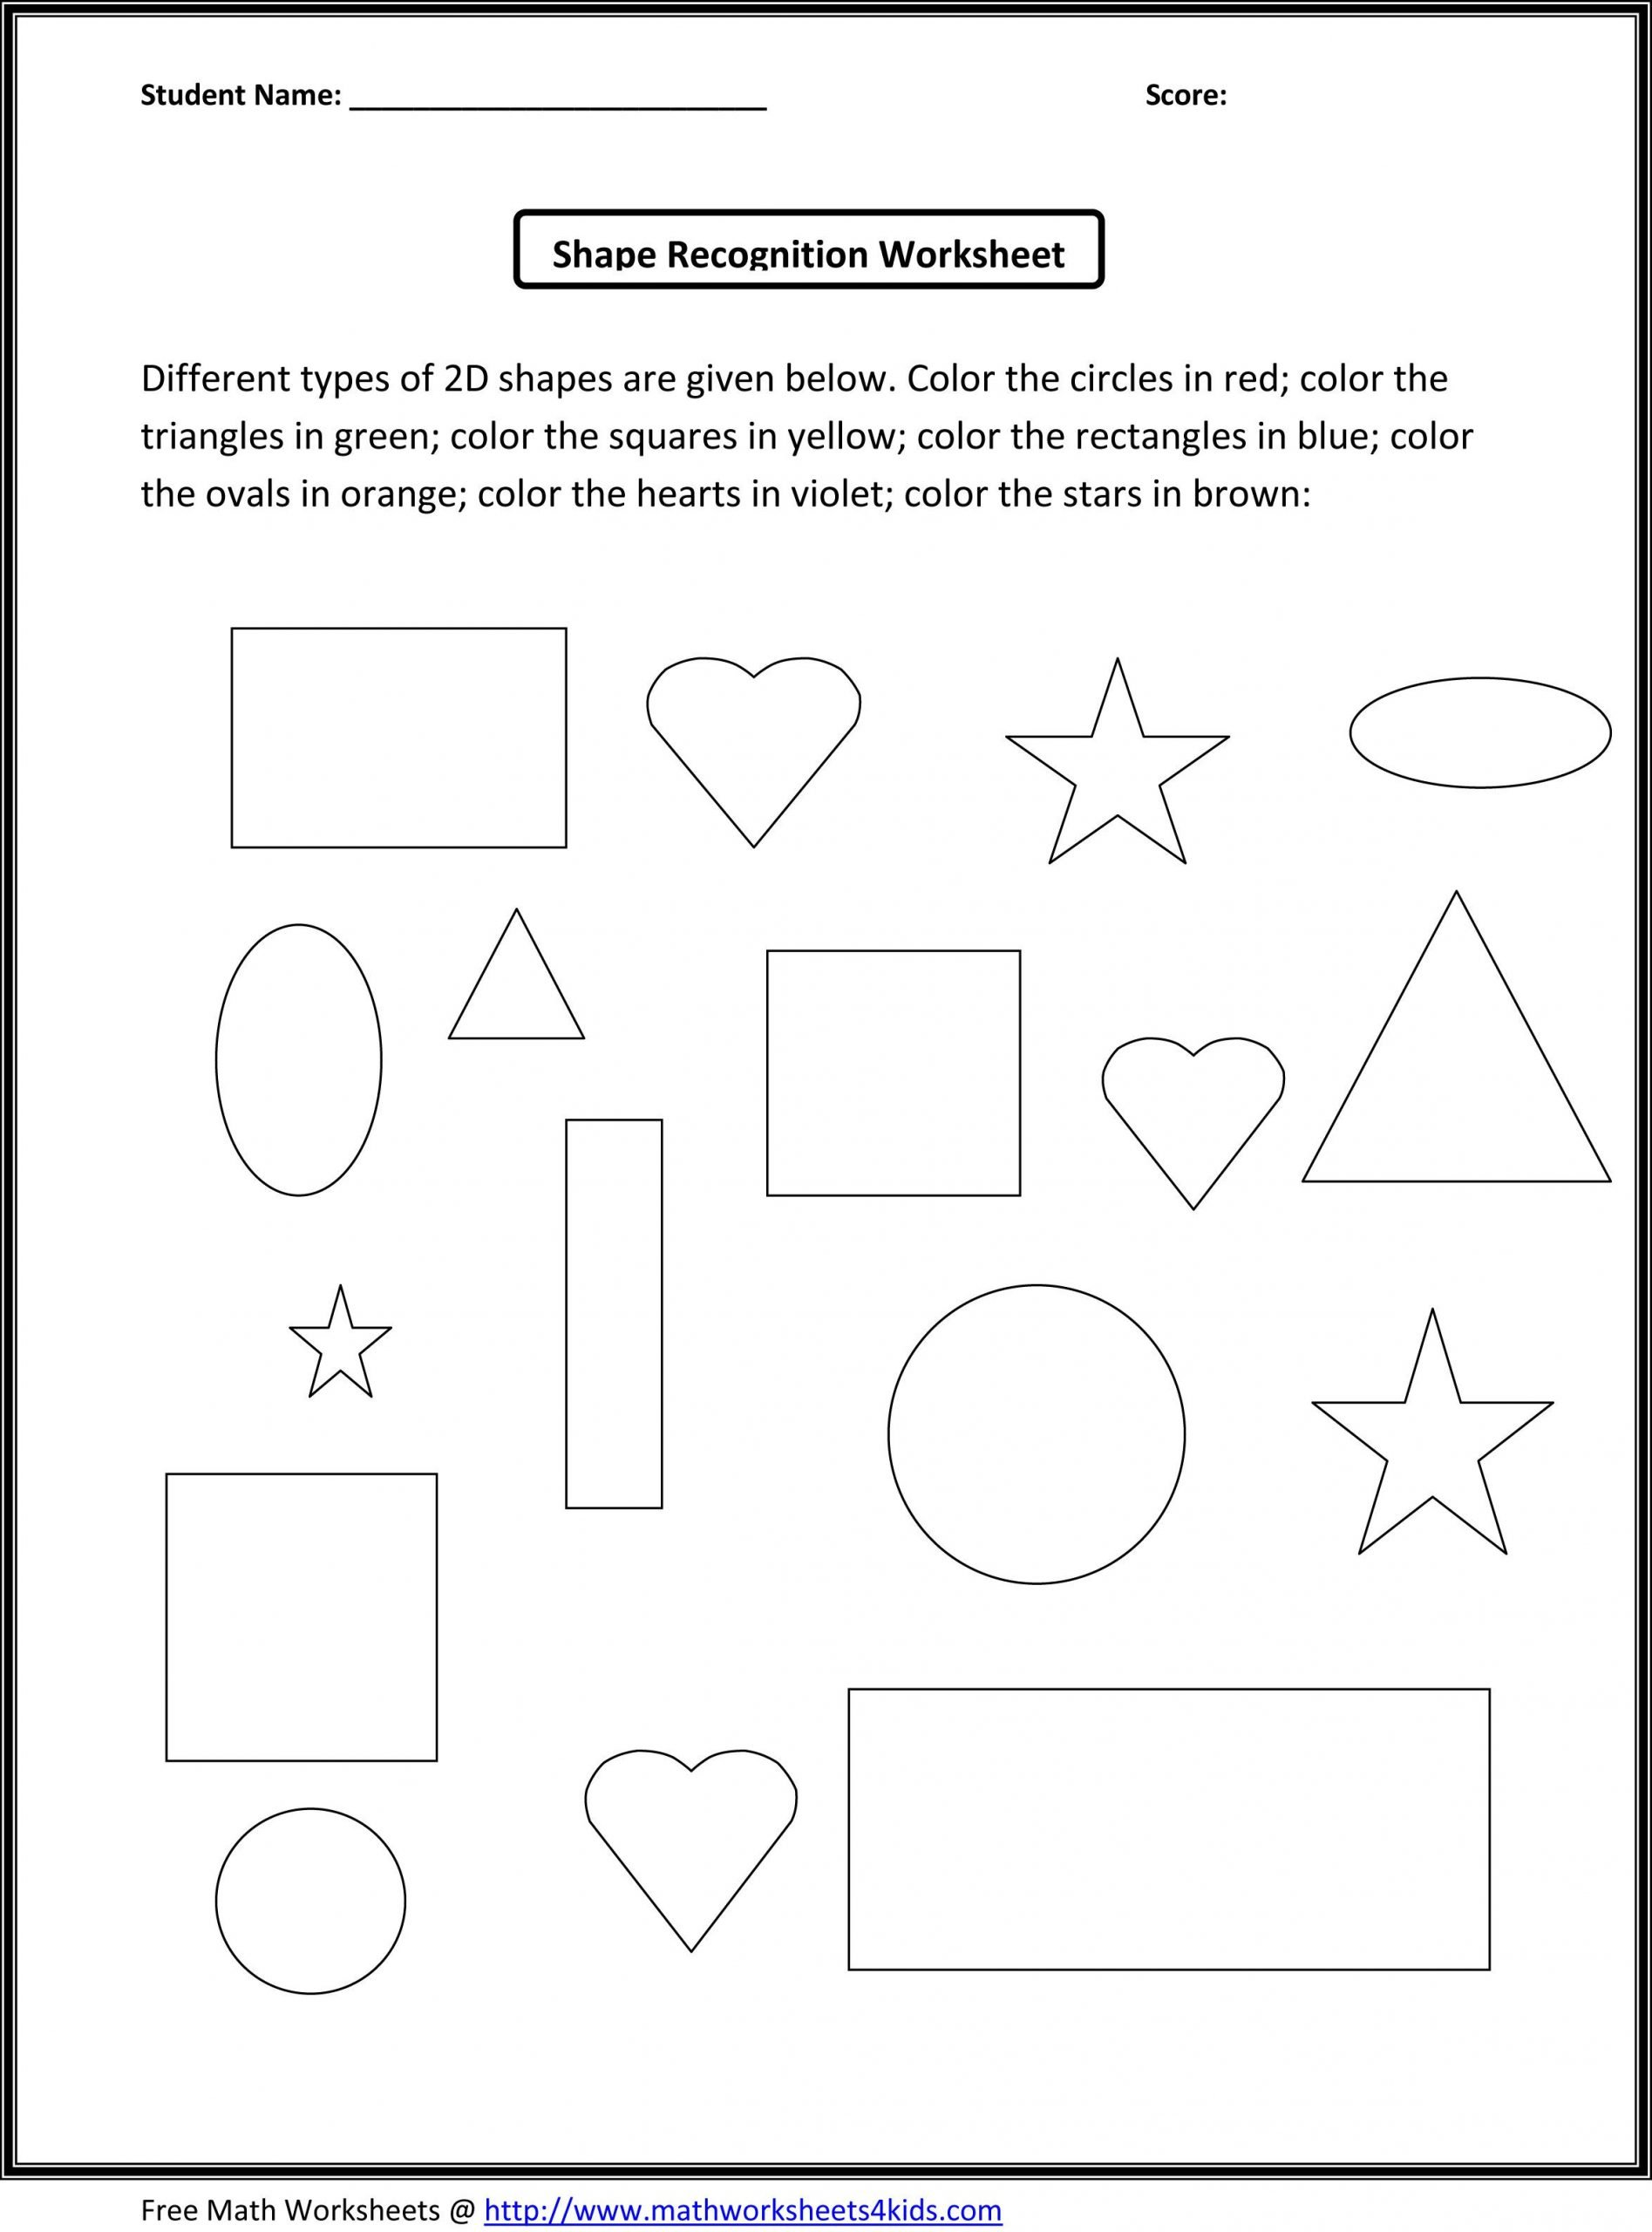 Shapes Worksheet for Kindergarten Kindergarten Math Worksheets